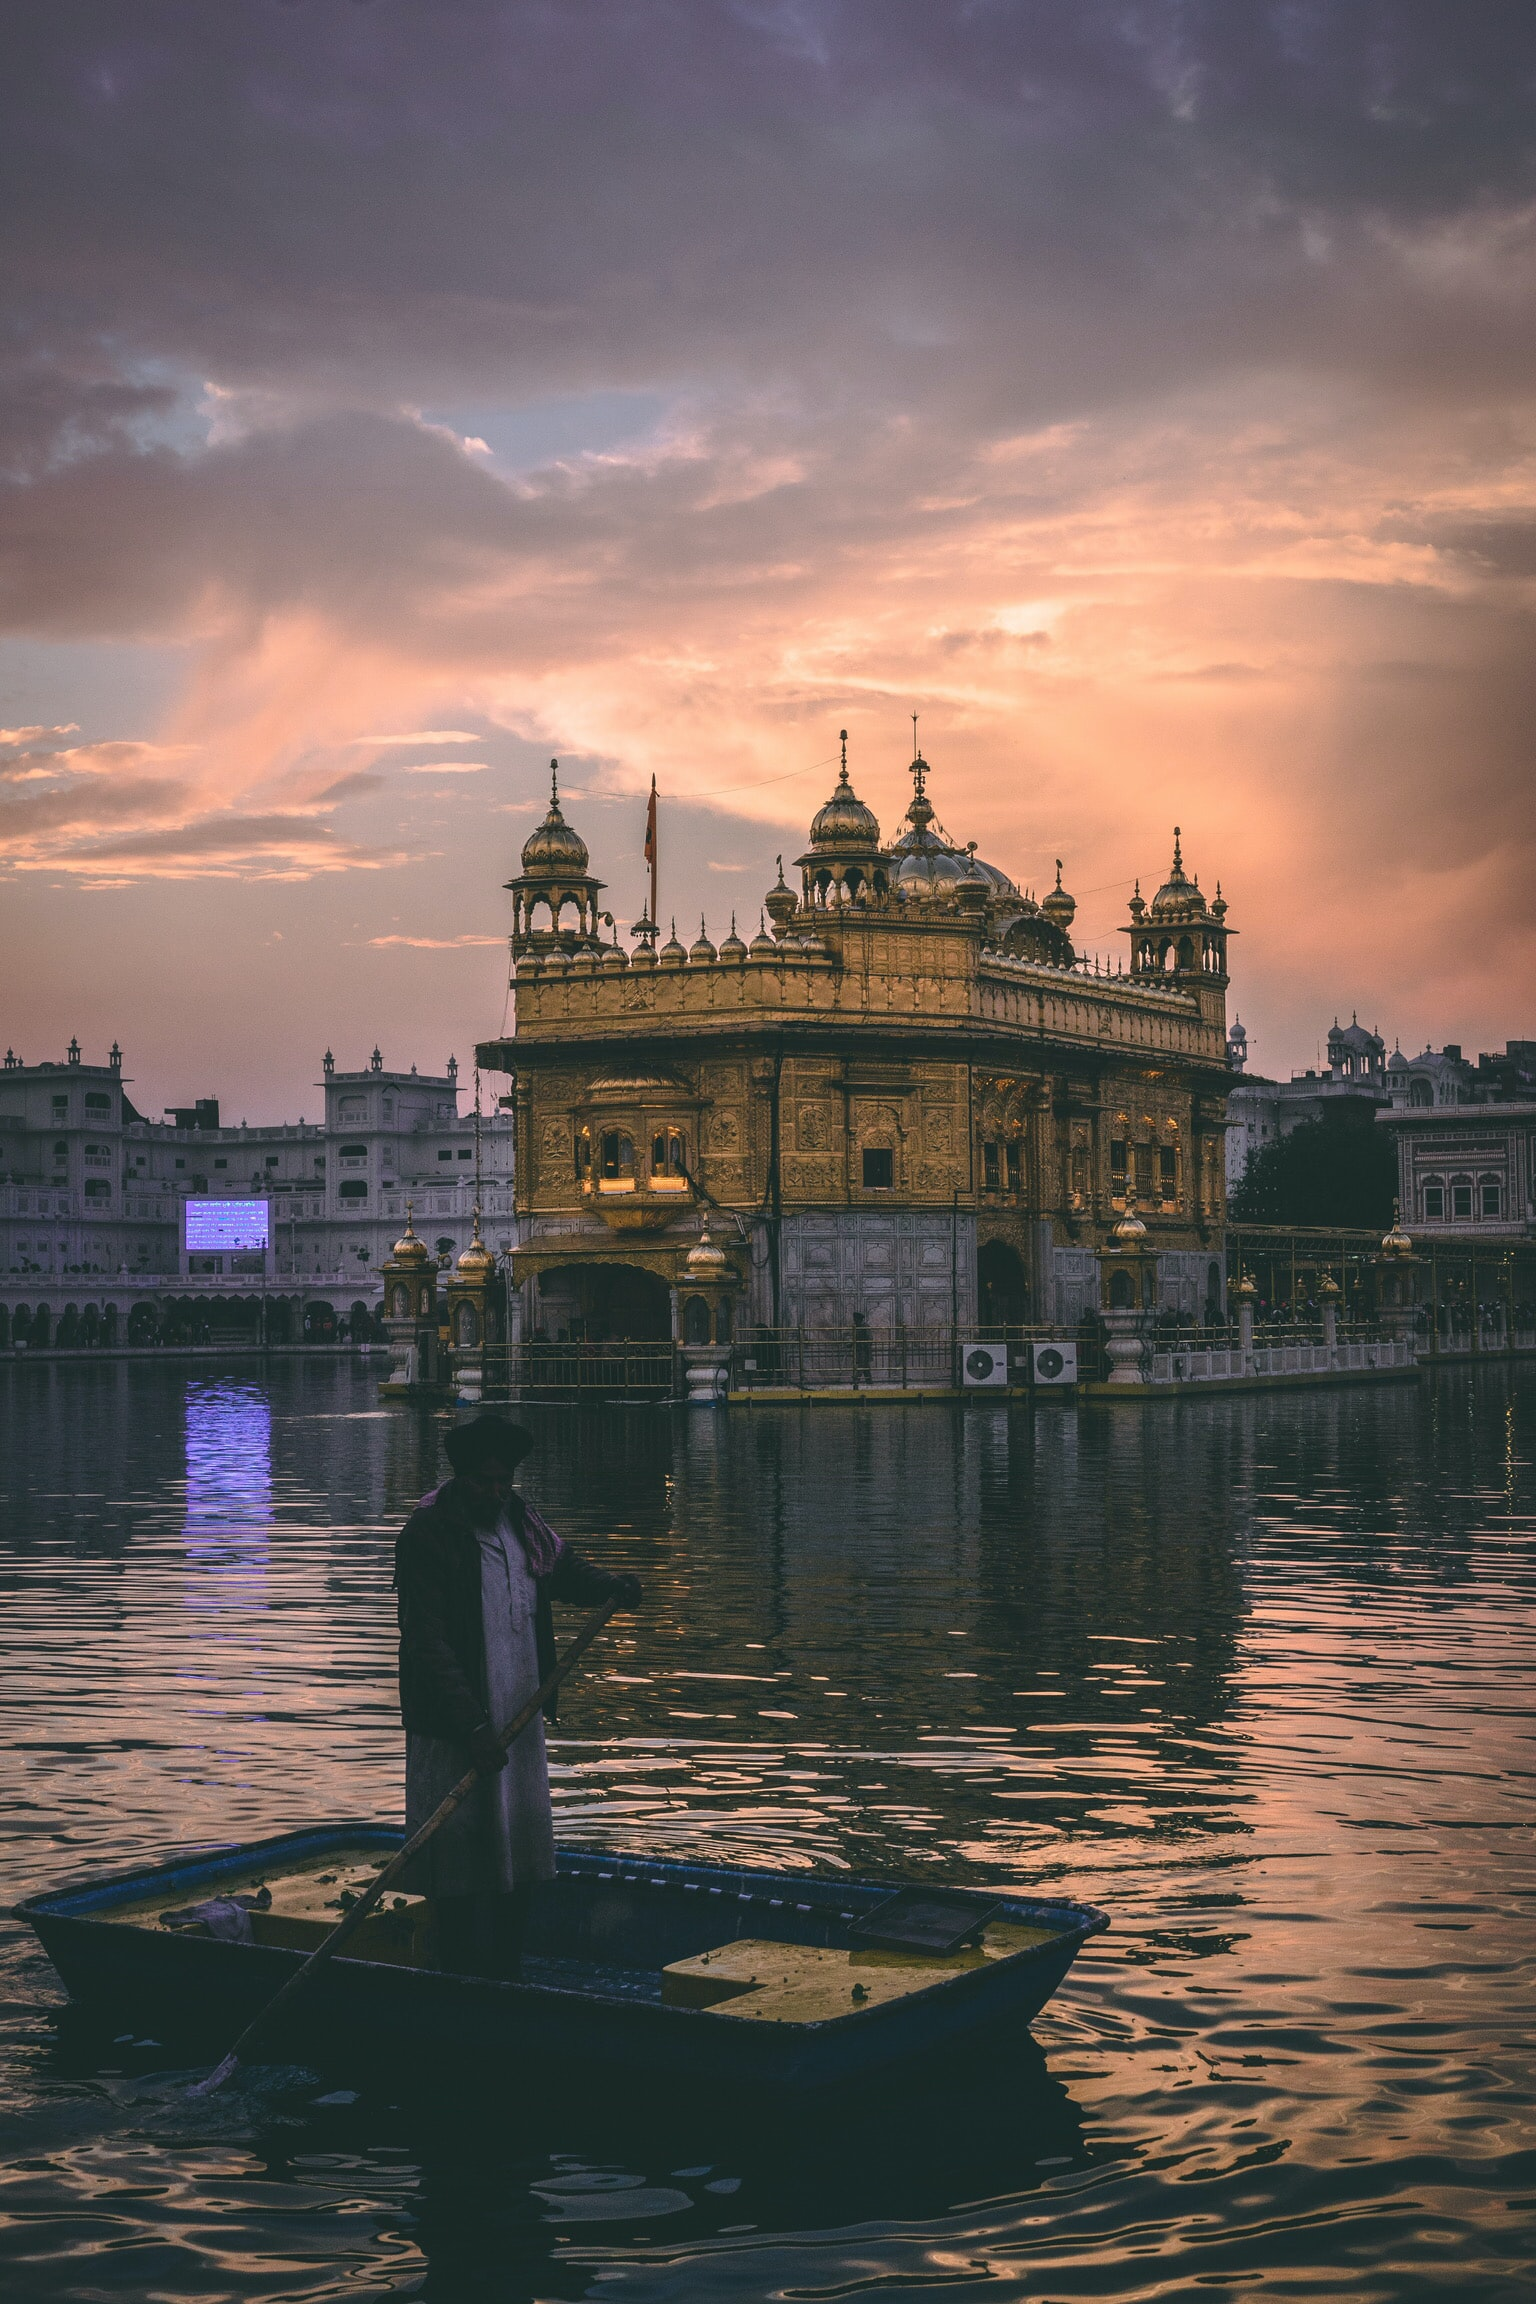 The past couple of days, I spent my time in Amritsar, Punjab which happens to a historically super significant place in India's independence struggle against the Brits, a Mecca of the Sikhs and foodies paradise since majority of the North Indian dishes originate from here. Here is one photo of The Golden Temple, the most important religious site for the Sikhs. Apart from being a religious site, it also serves free, volunteer driven meals throughout the day and is the largest free kitchen in the world with over 100,000 delicious 3 course meals on a daily basis.